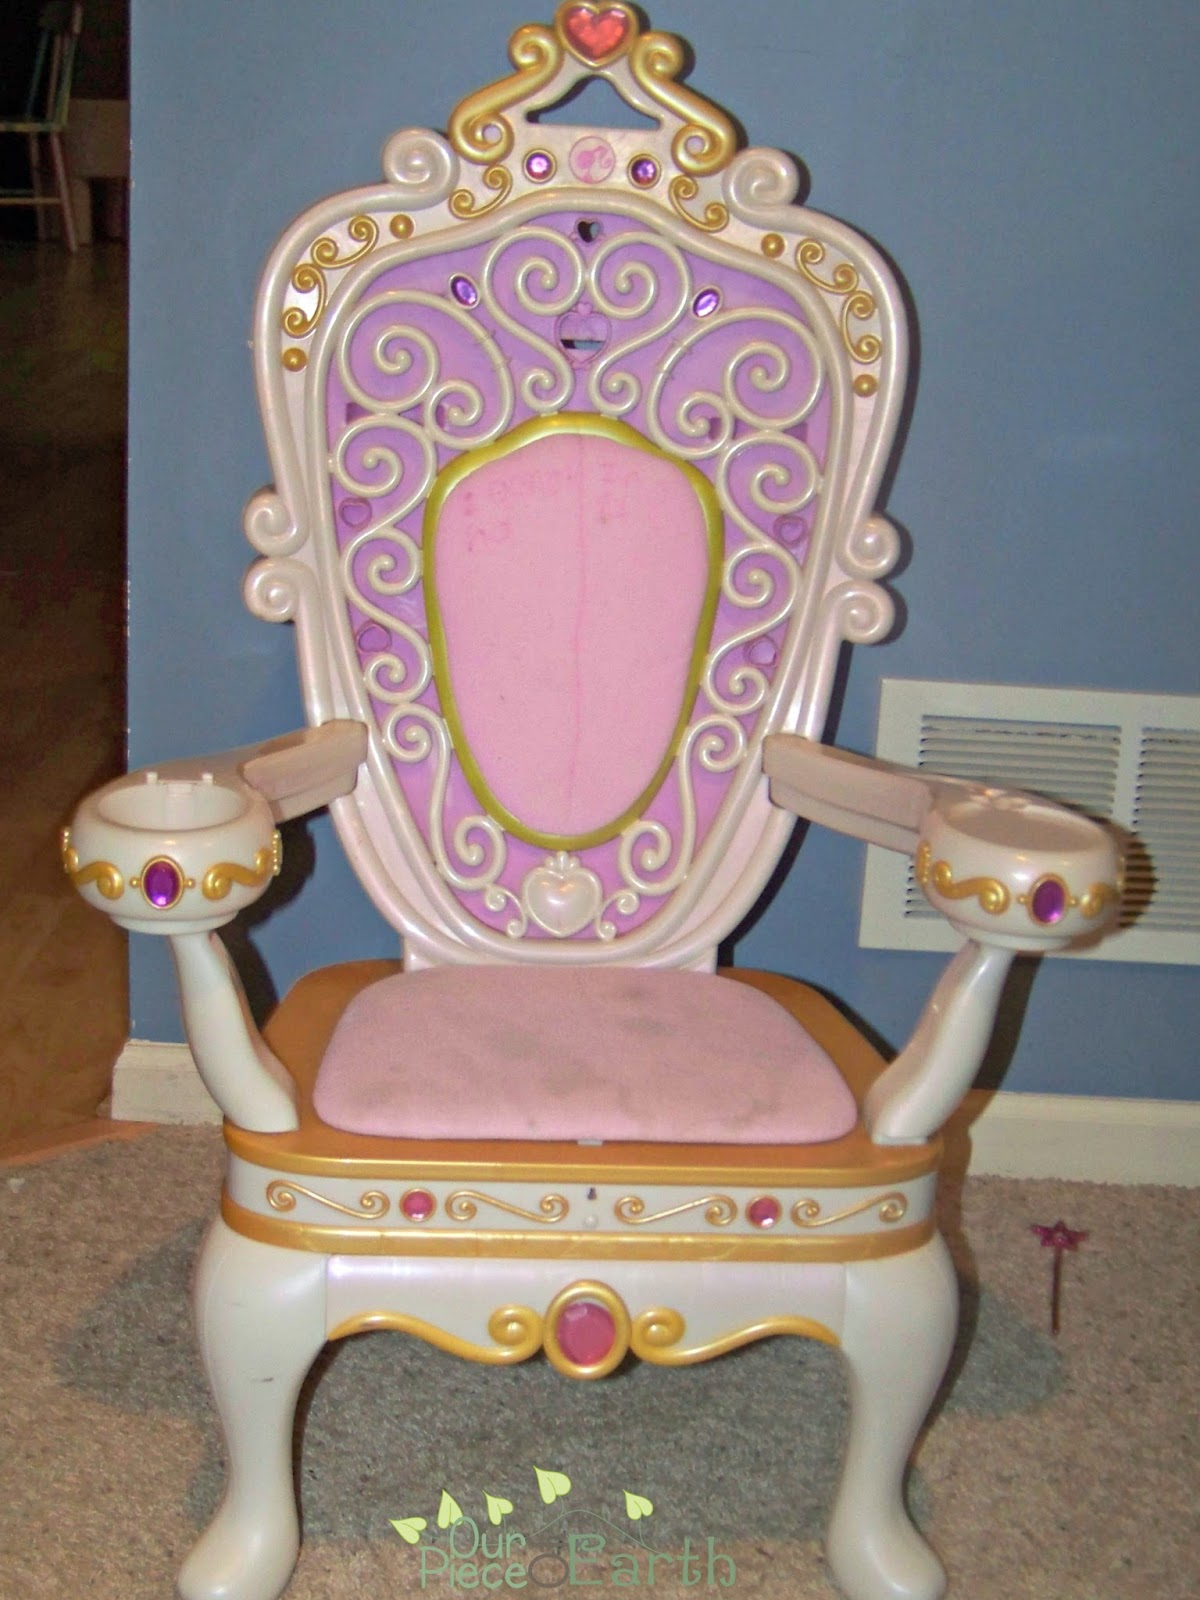 niall and mitch got hitched: DIY Princess Throne